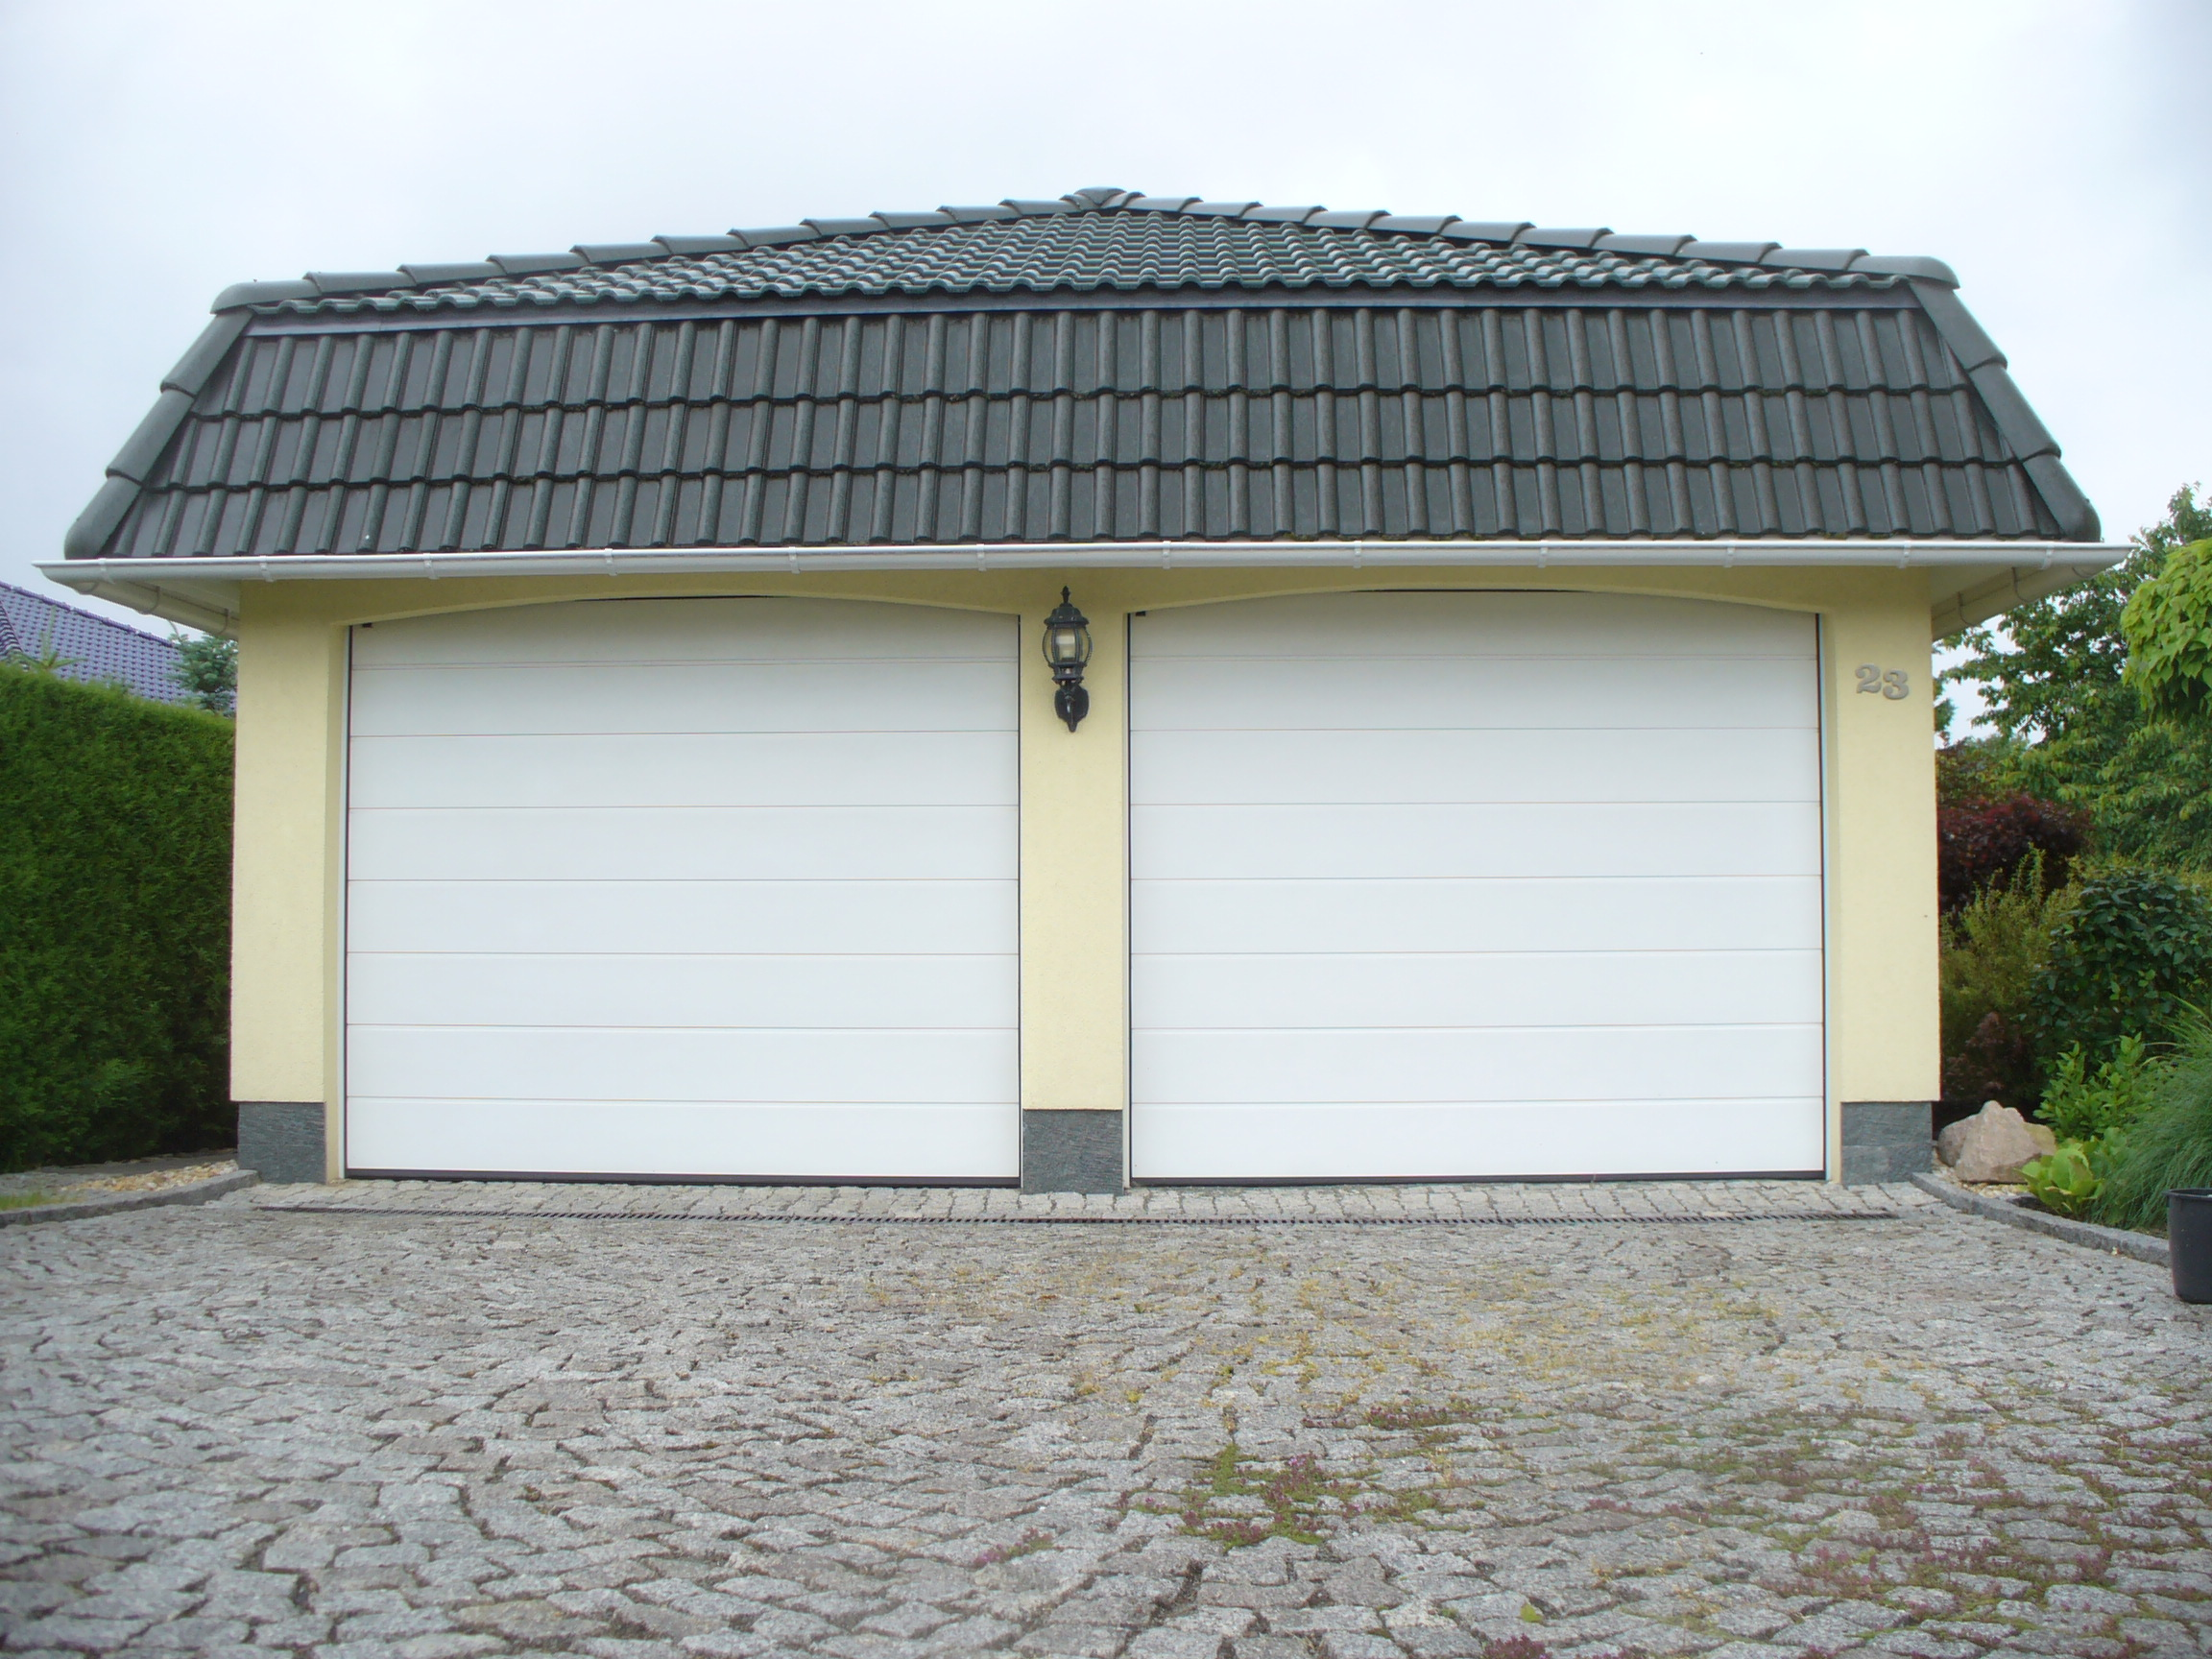 carport baugenehmigung hessen grenzbebauung hessen carport my blog carport hessen nach ma von. Black Bedroom Furniture Sets. Home Design Ideas